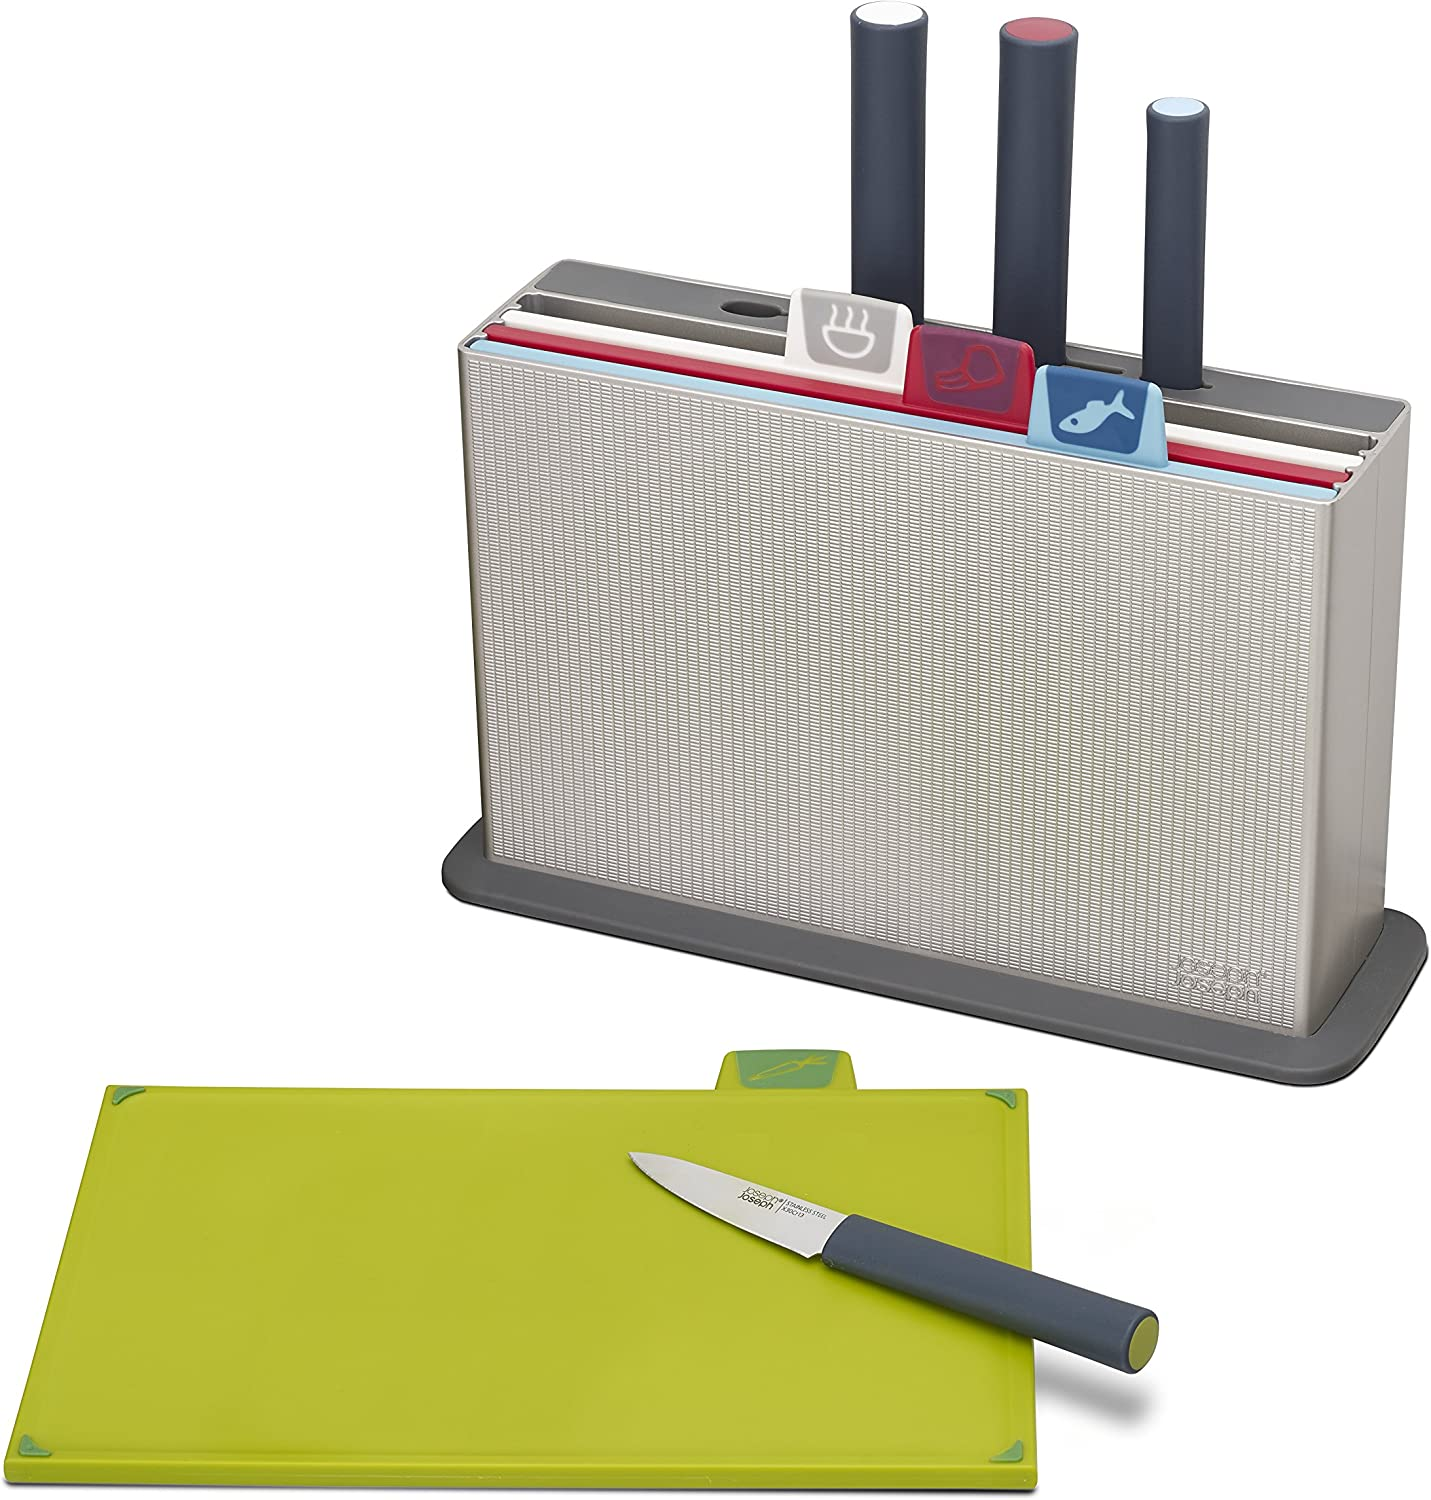 New sales Joseph Index Plastic Cutting Board Outlet sale feature Set Matching with 4 Kn